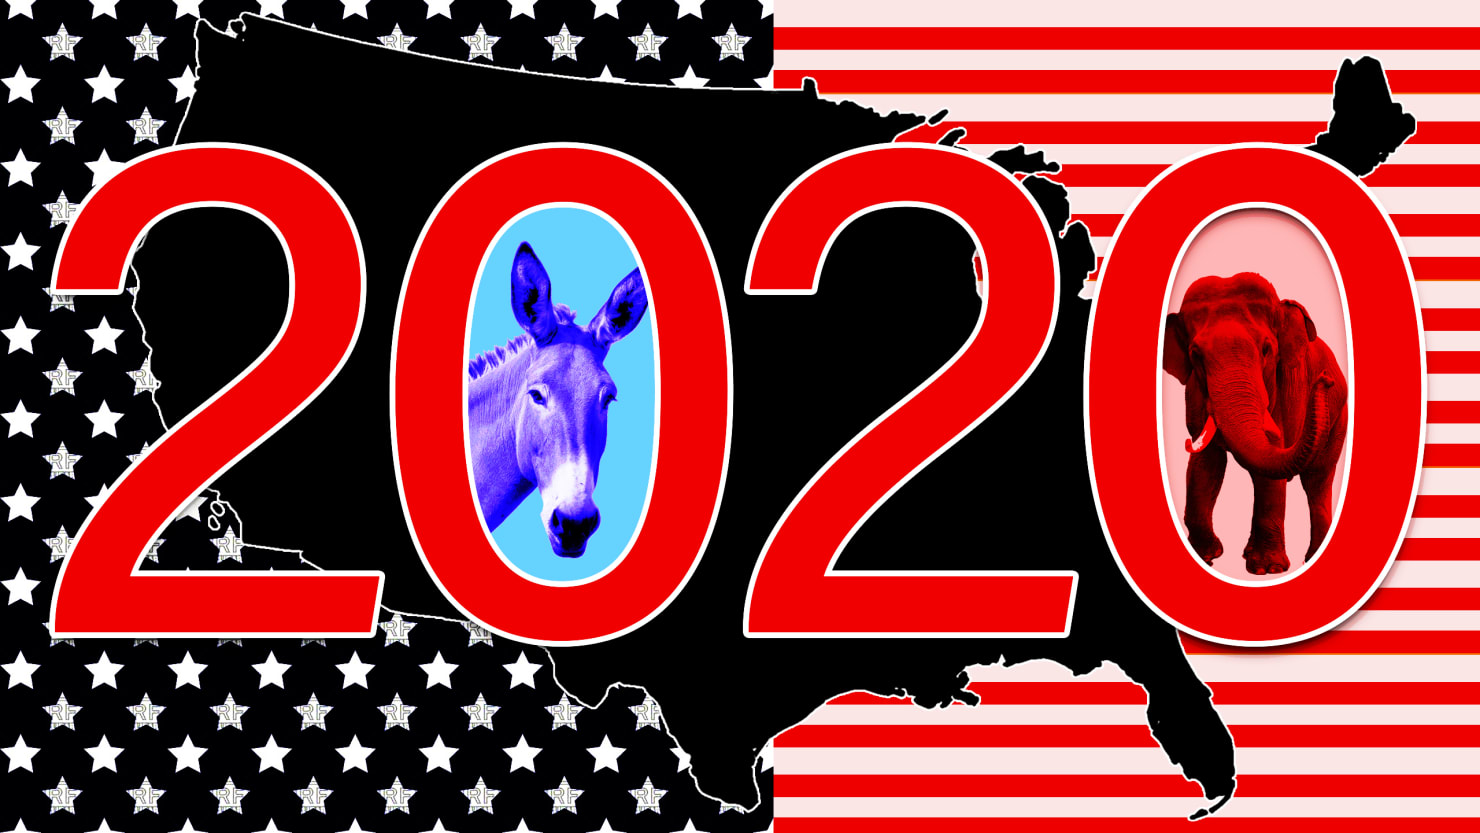 the democrats who stand a chance in 2020